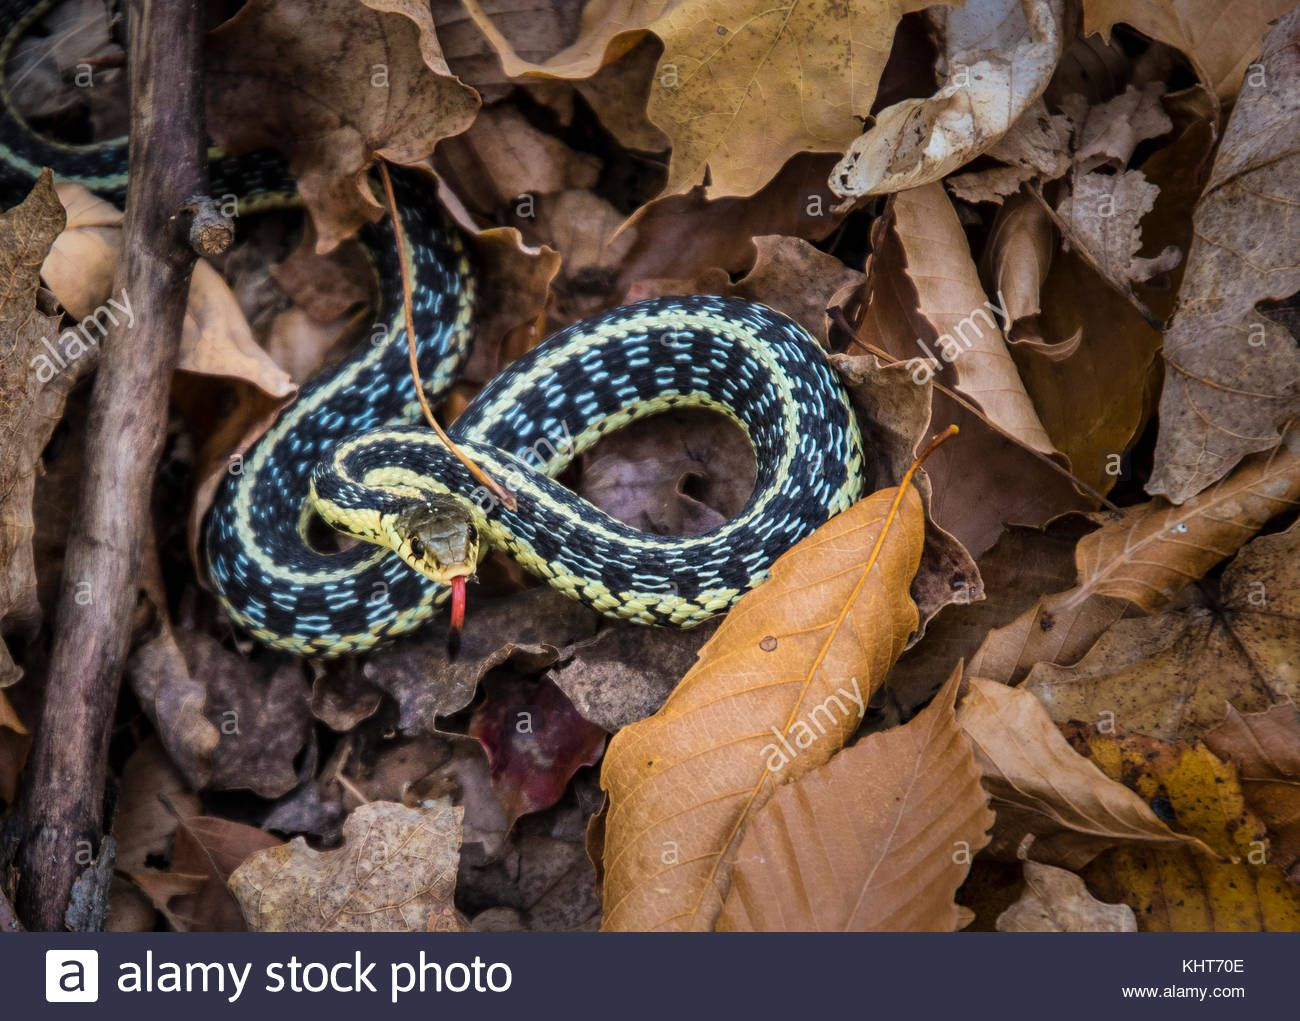 Pin By Claire Taylor On Garter Snake Animals Snake Reptiles